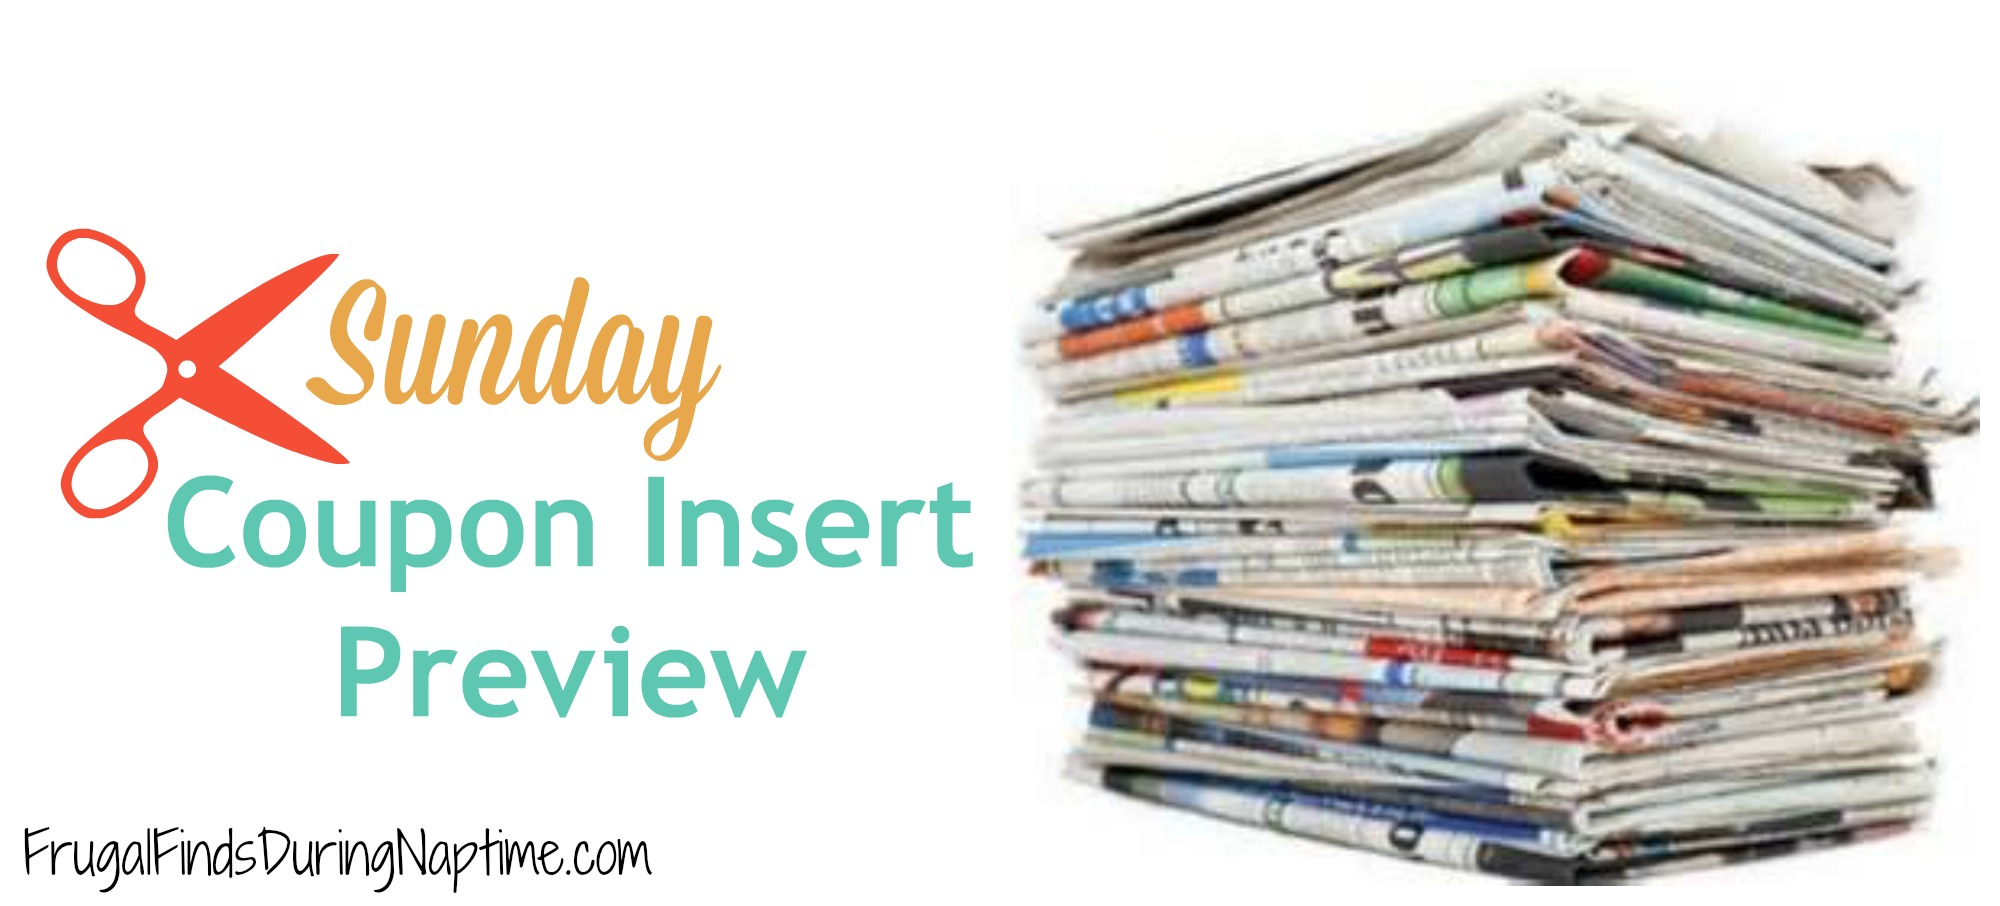 Coupon Insert Preview June 25